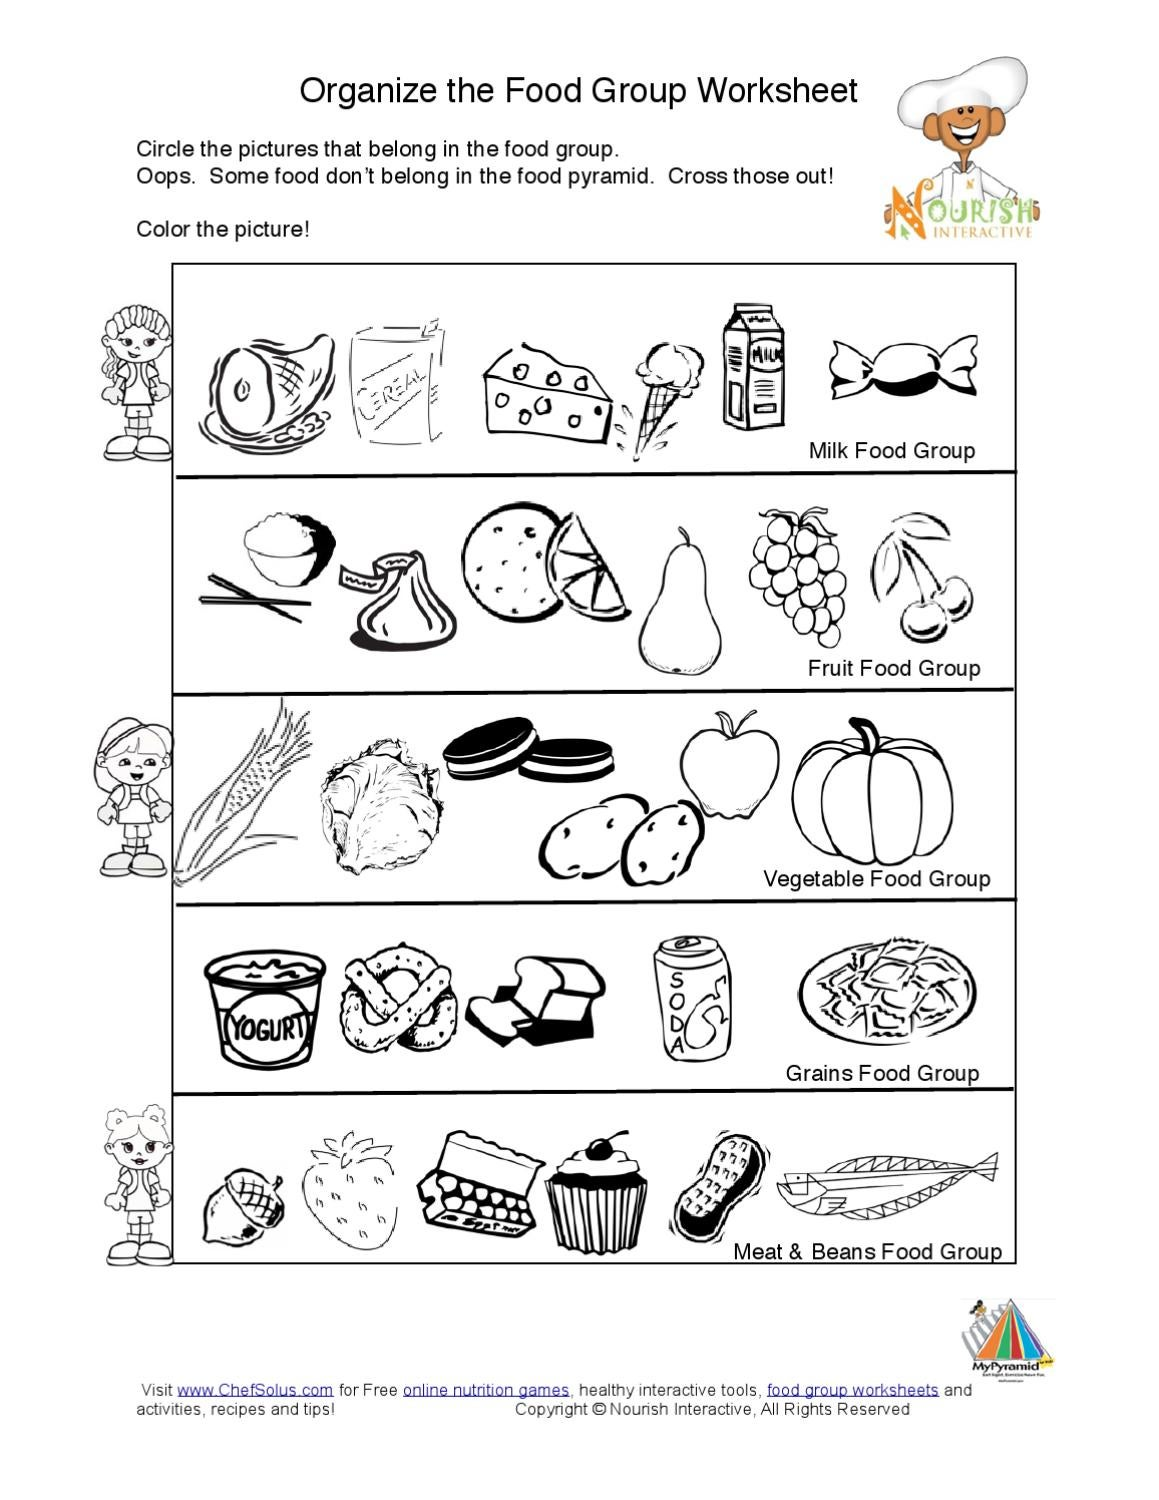 Worksheets Nutrition Worksheets For Elementary kids food pyramid groups learning nutrition worksheet k 5 elementary school by nieves hita issuu